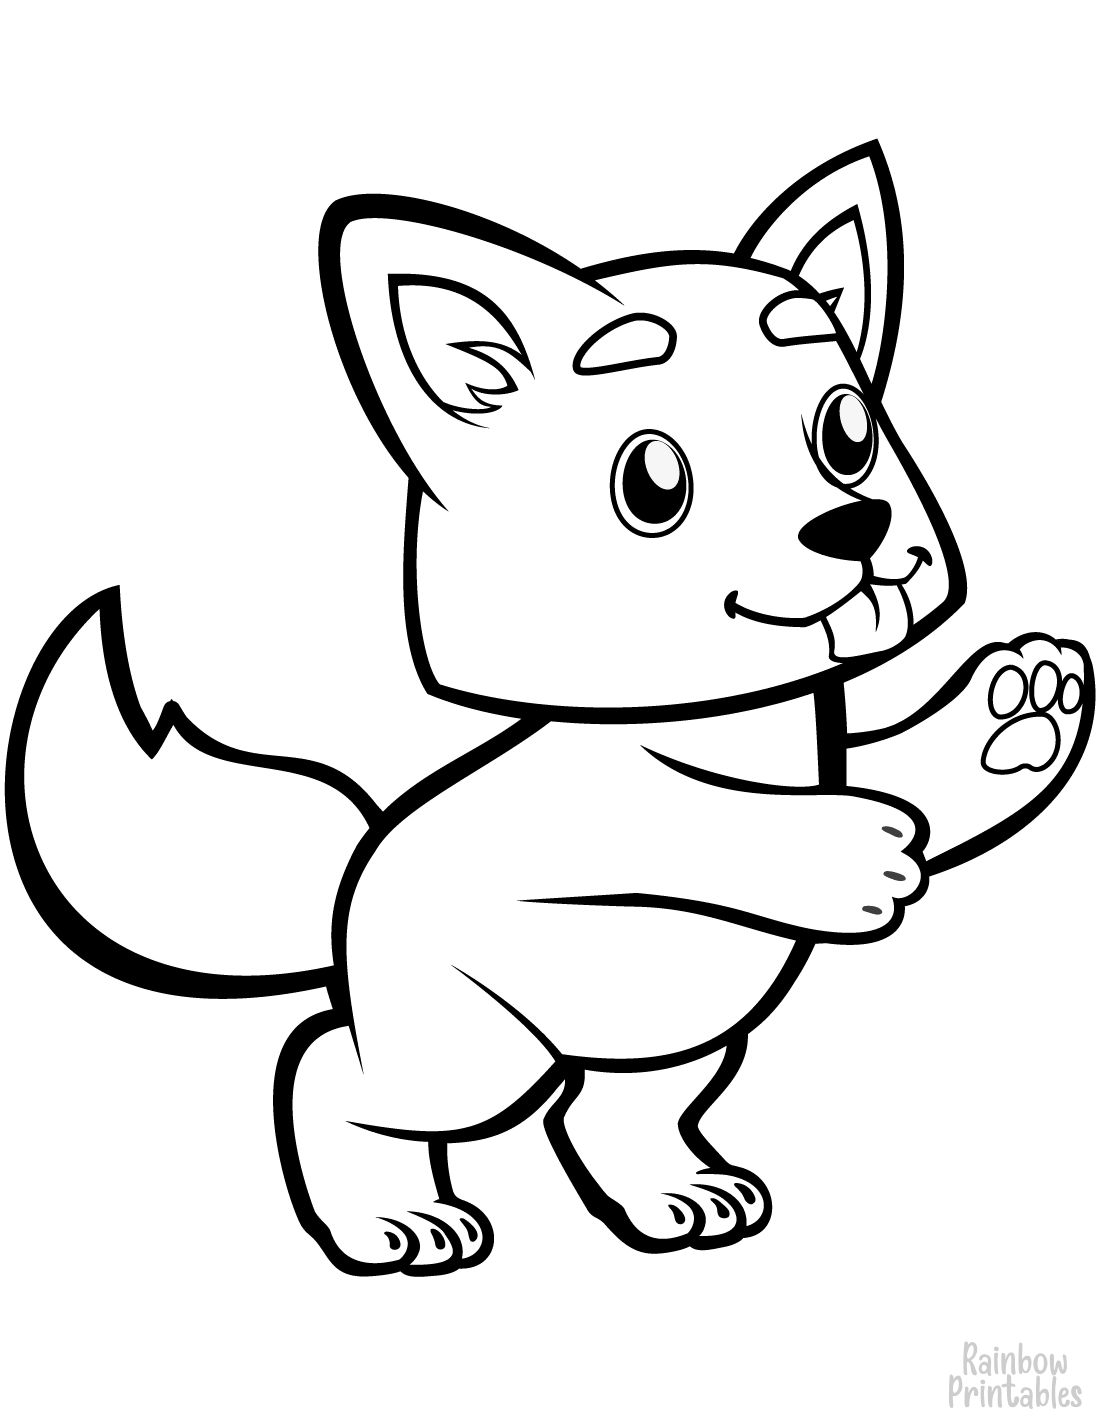 100+ Free Animal Coloring Pages for Kids